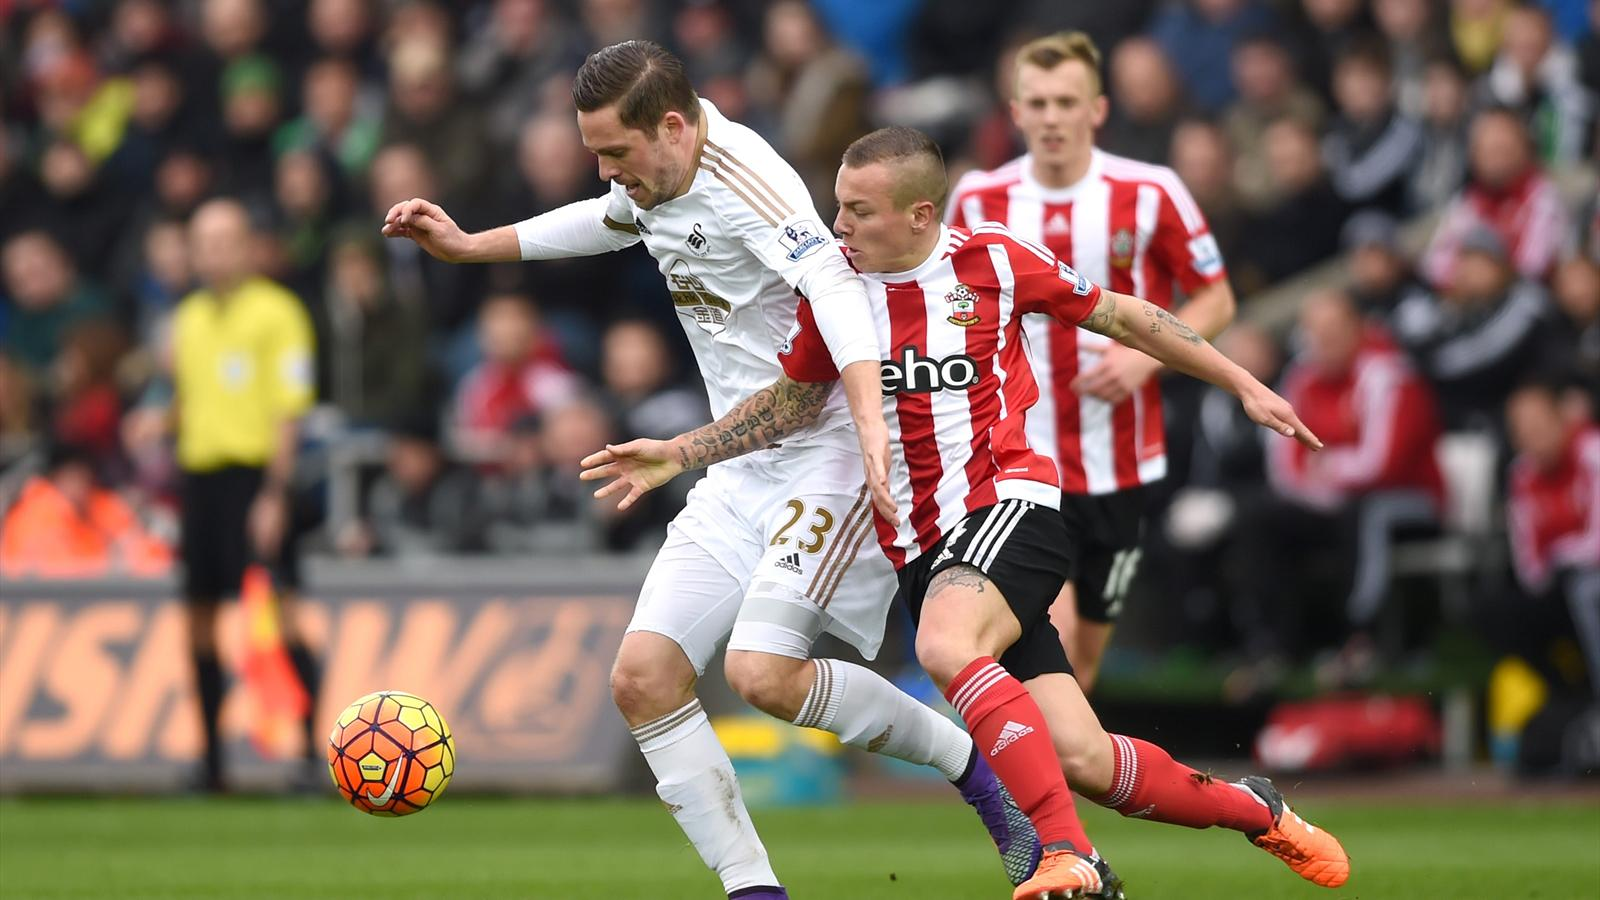 Swansea's Gylfi Sigurdsson in action with Southampton's Jordy Clasie